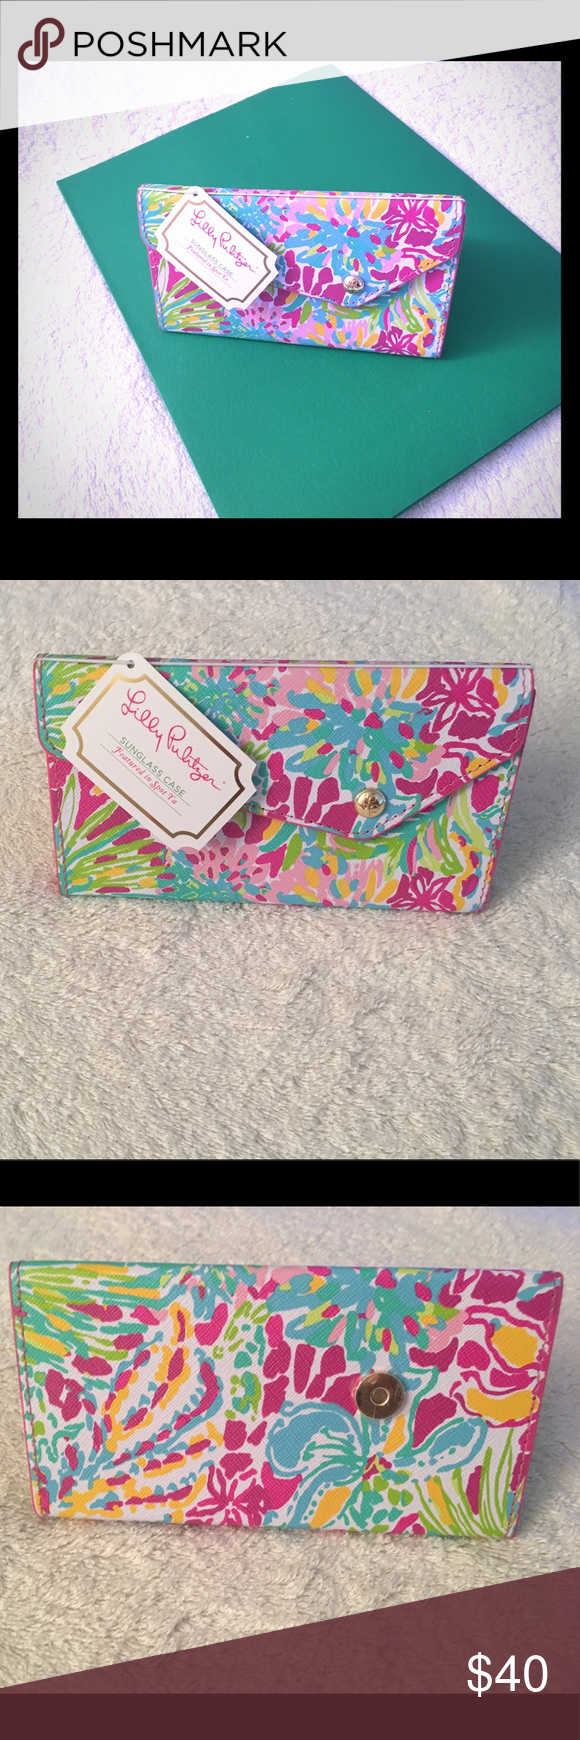 8eed7d9eed I just added this listing on Poshmark  Lilly Pulitzer Sunglass Case